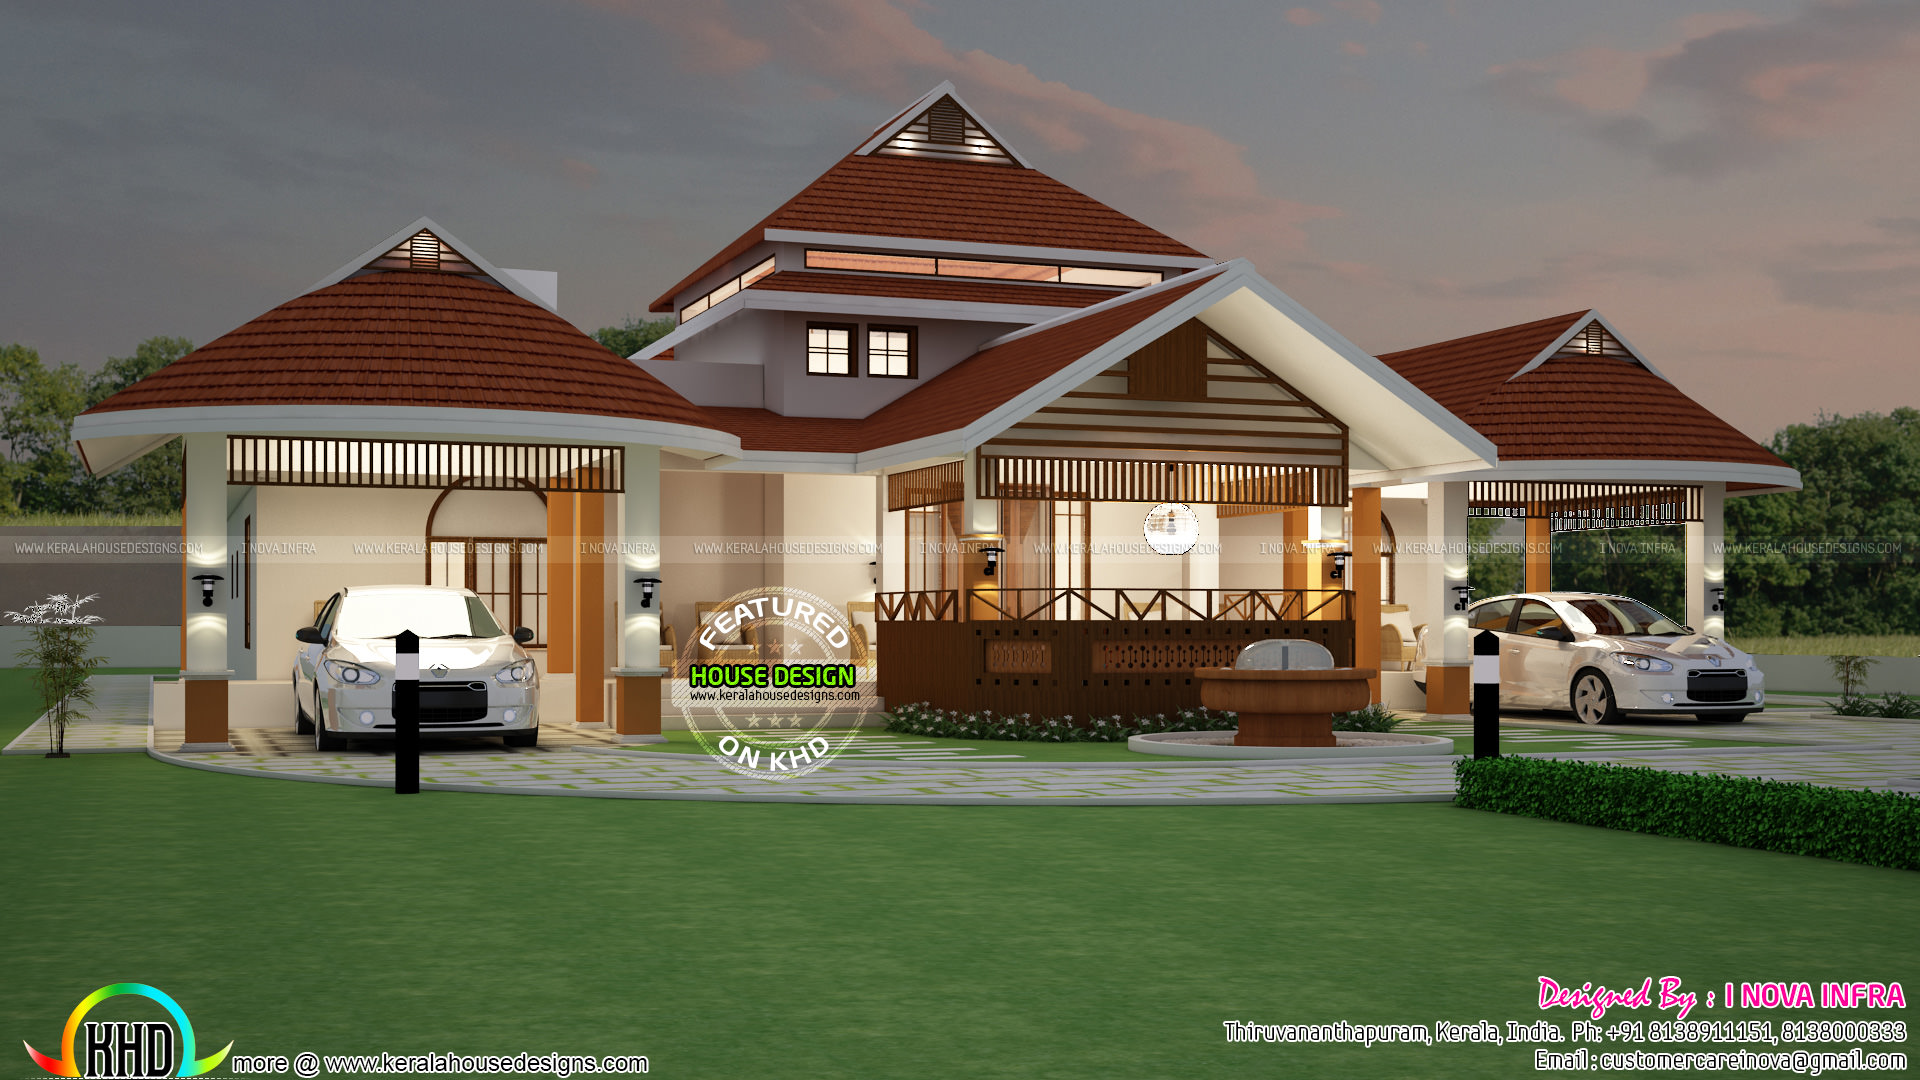 Big and beautiful kerala home design kerala home design and floor plans - Kerala beautiful house ...